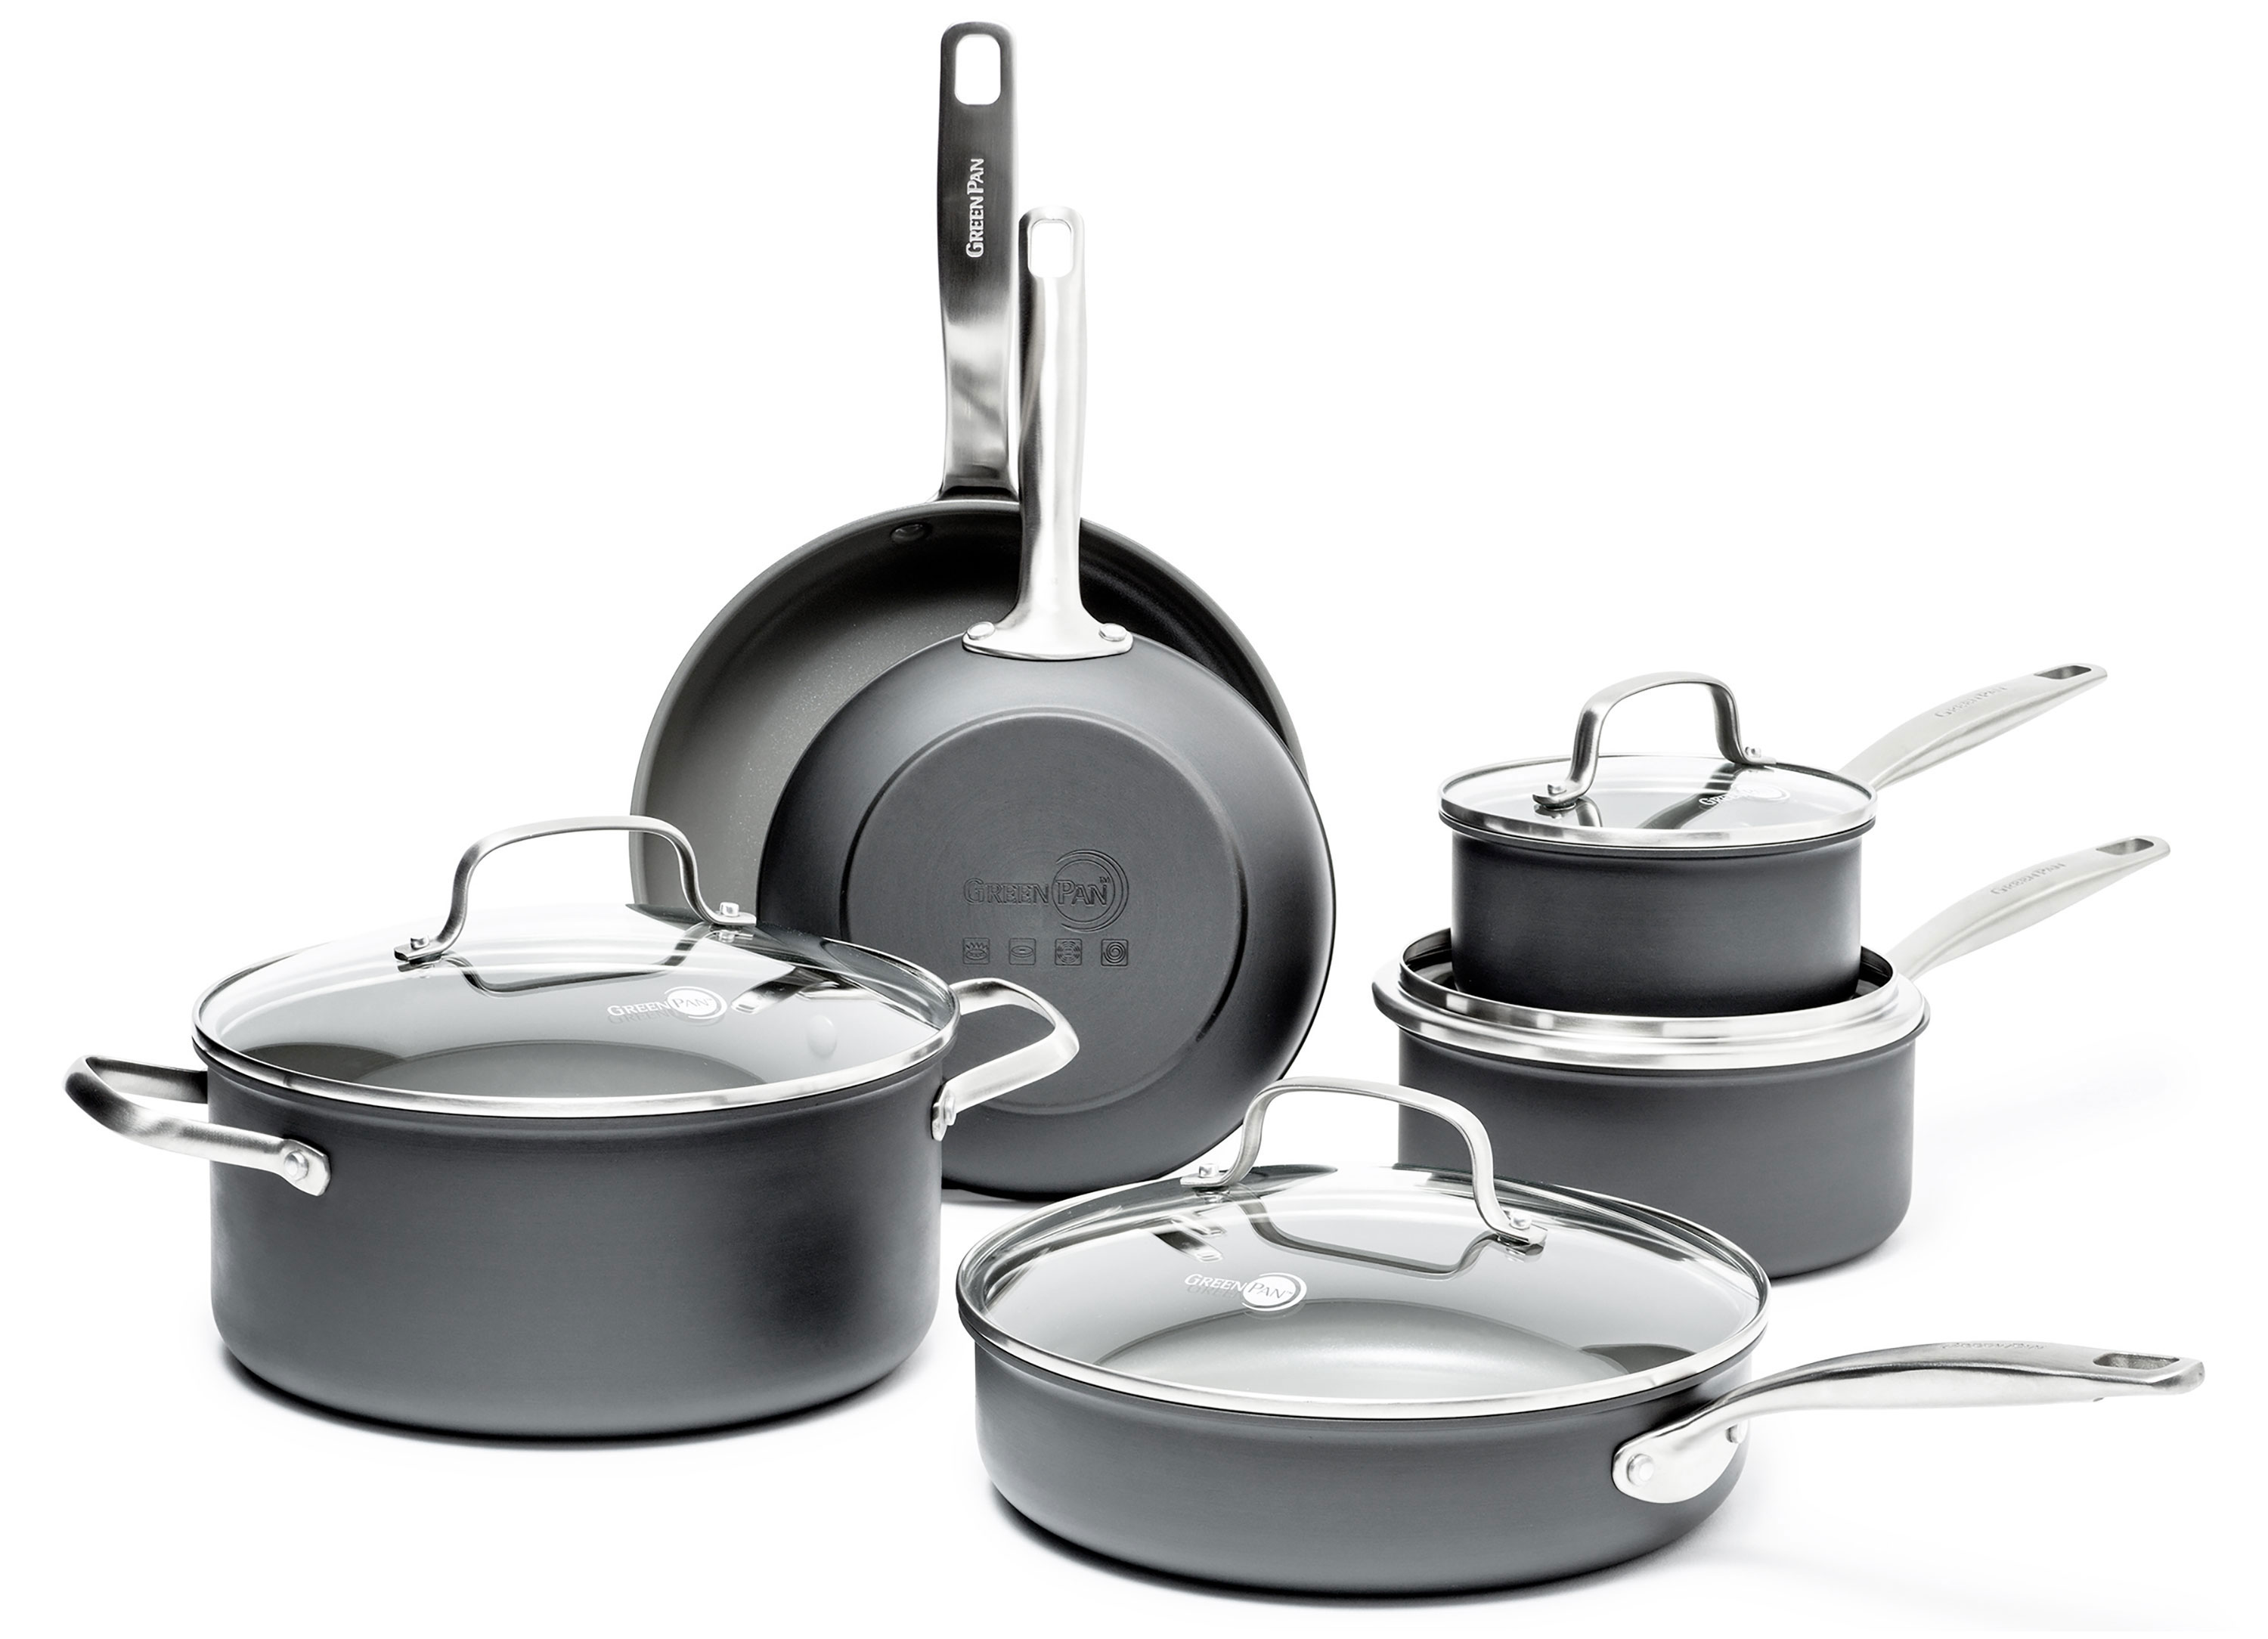 Greenpan Chatham Nonstick Cookware Set 10 Piece Cutlery